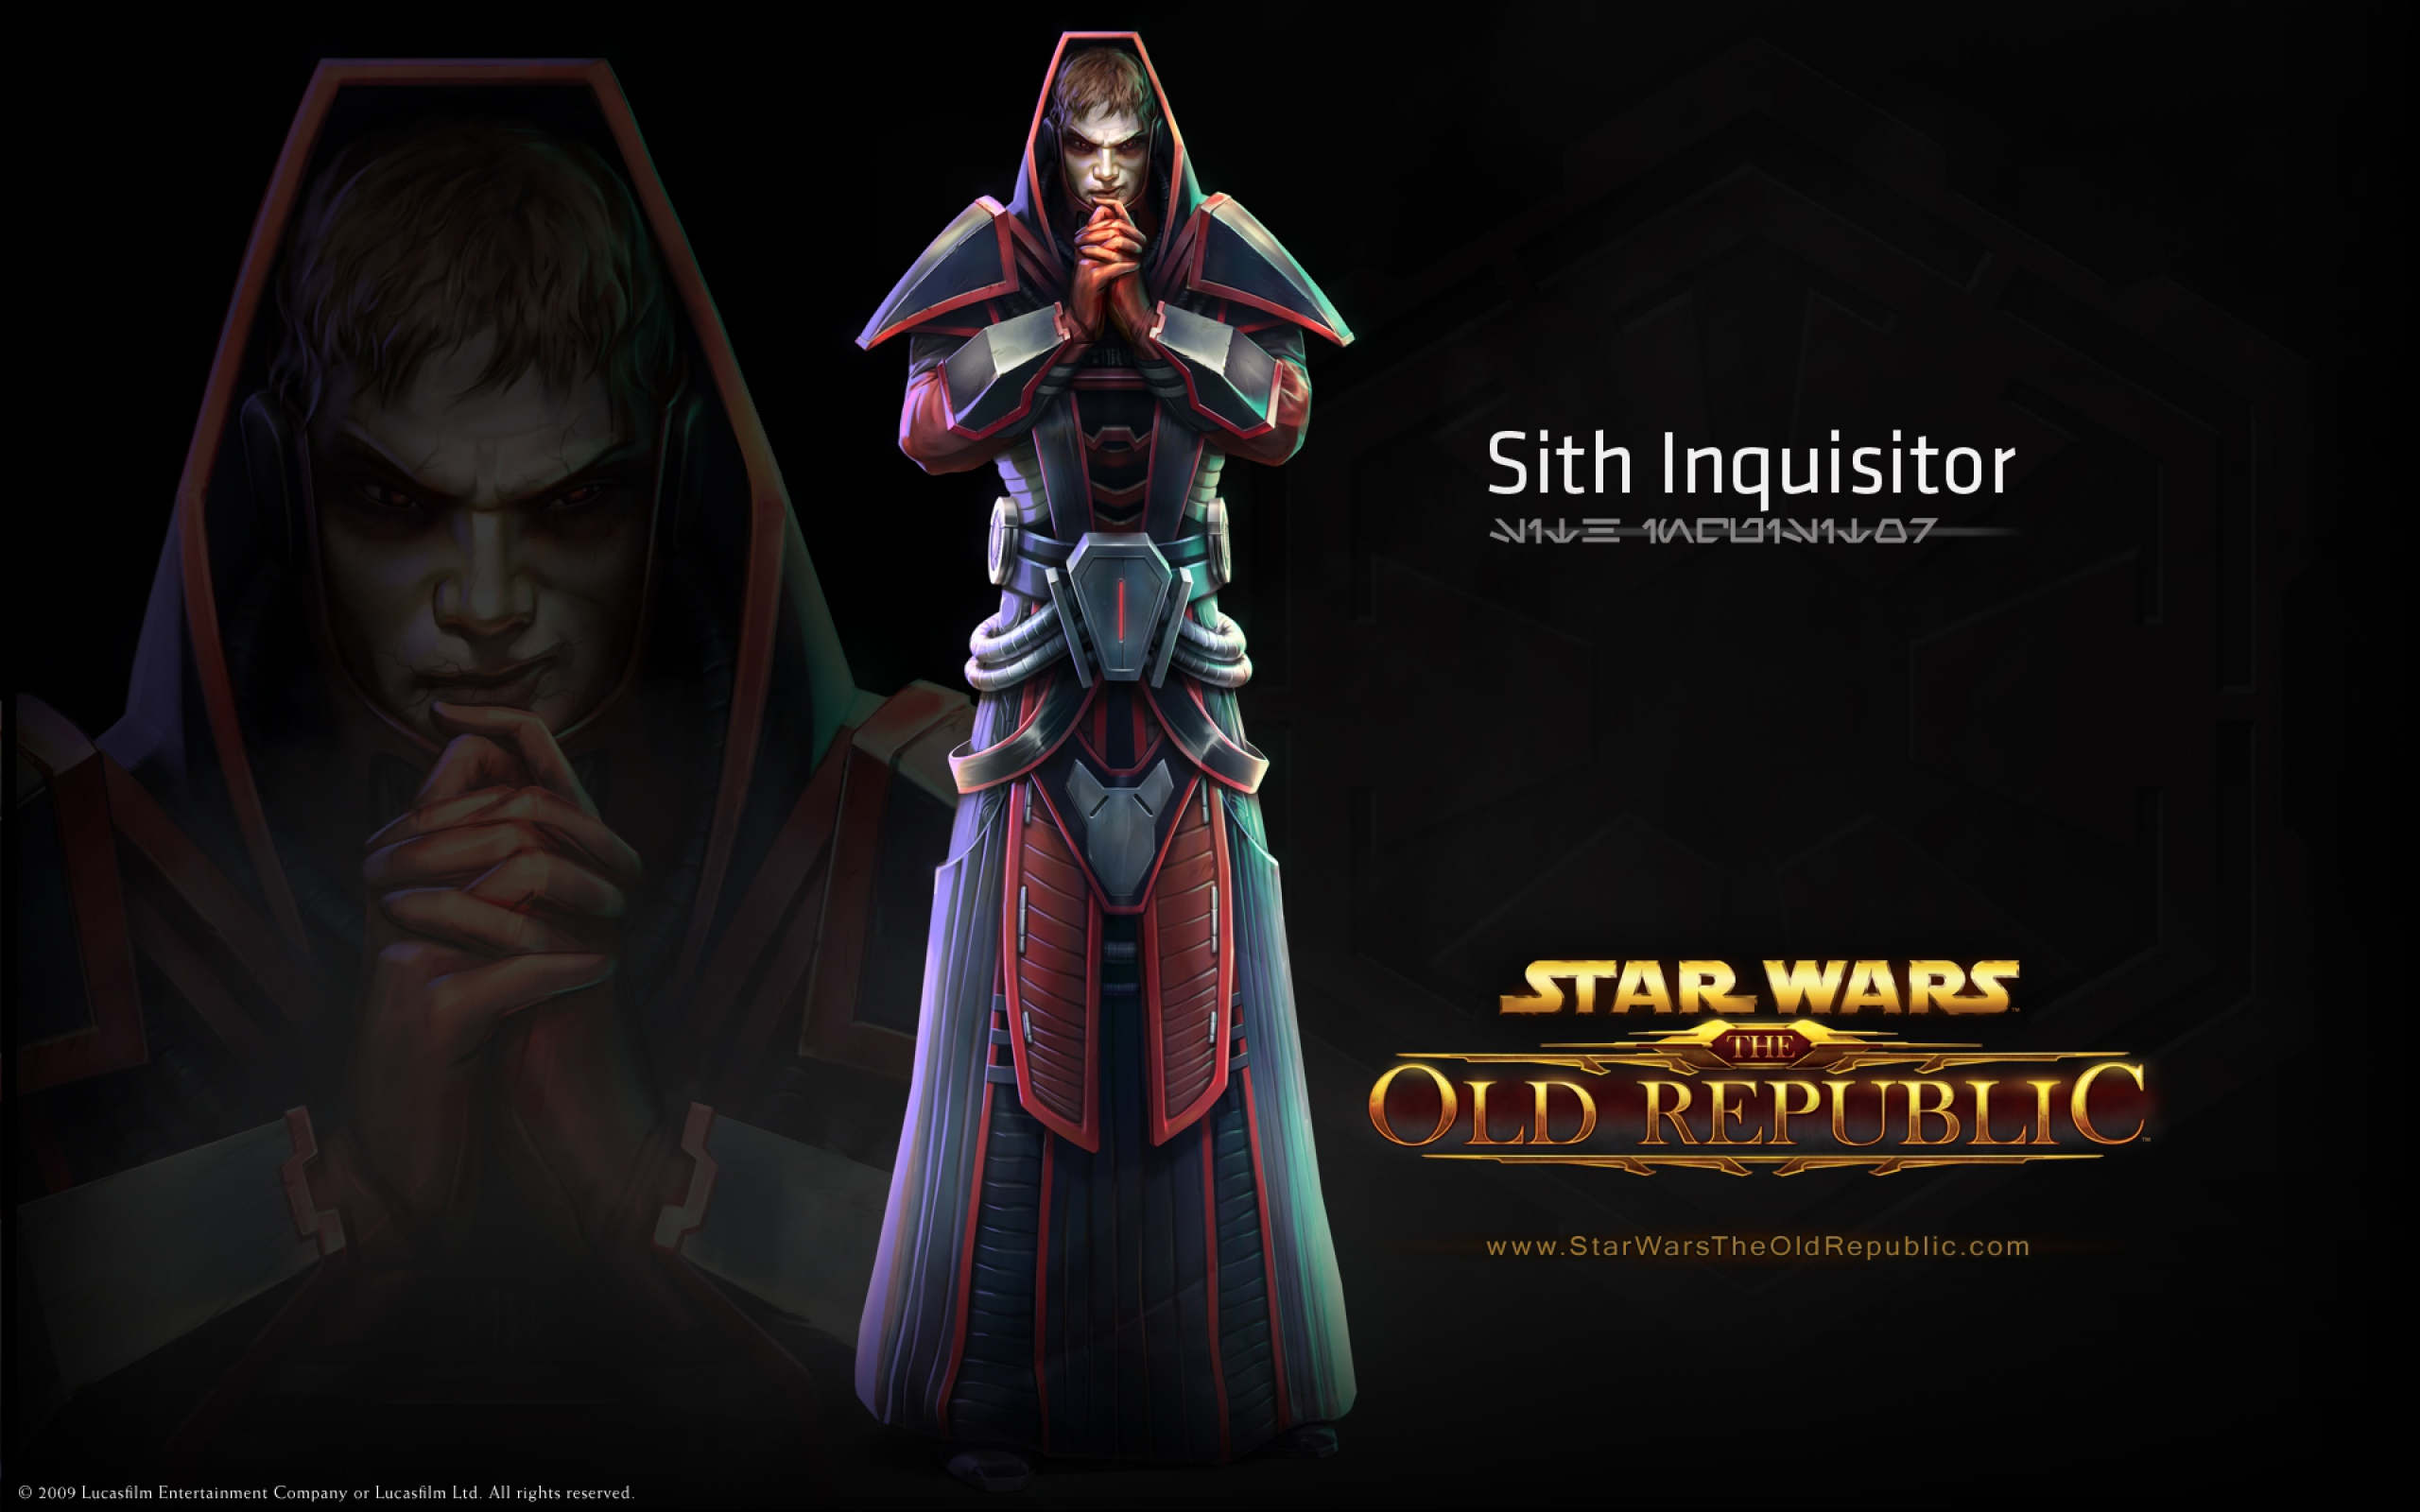 Sith Inquisitor Swtor Hd Wallpaper Background Image 2560x1600 Id 567986 Wallpaper Abyss